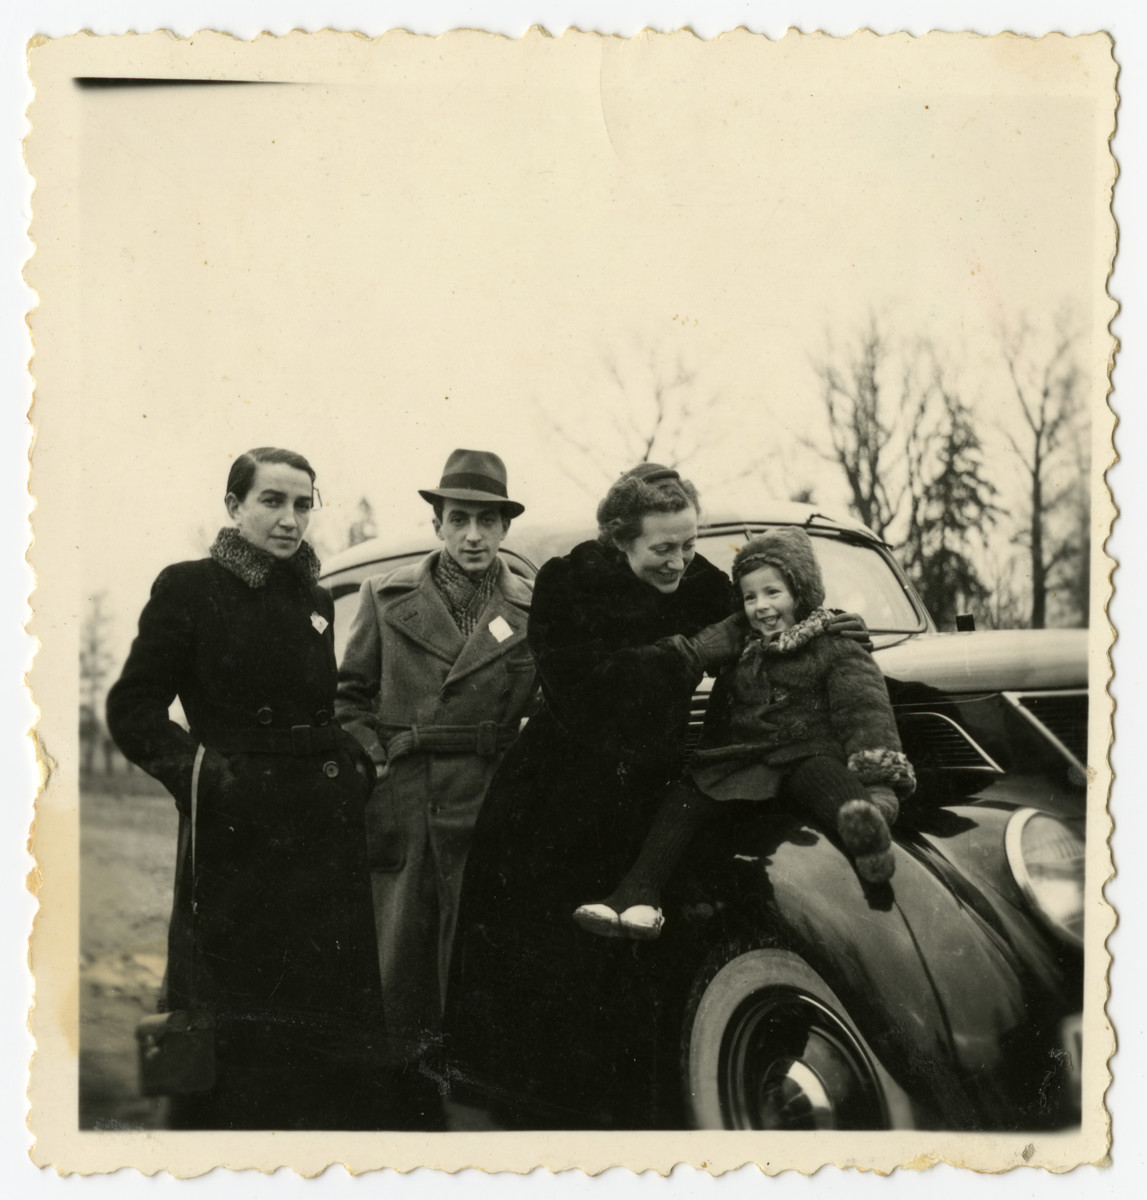 Rosian Bagriansky sits on top of her father's Ford next to her mother and family friends.  Gerta Bagriansky is pictured second from the right next to her daughter Rosian.  Rivka Smukler Osherovitz is on the far left.